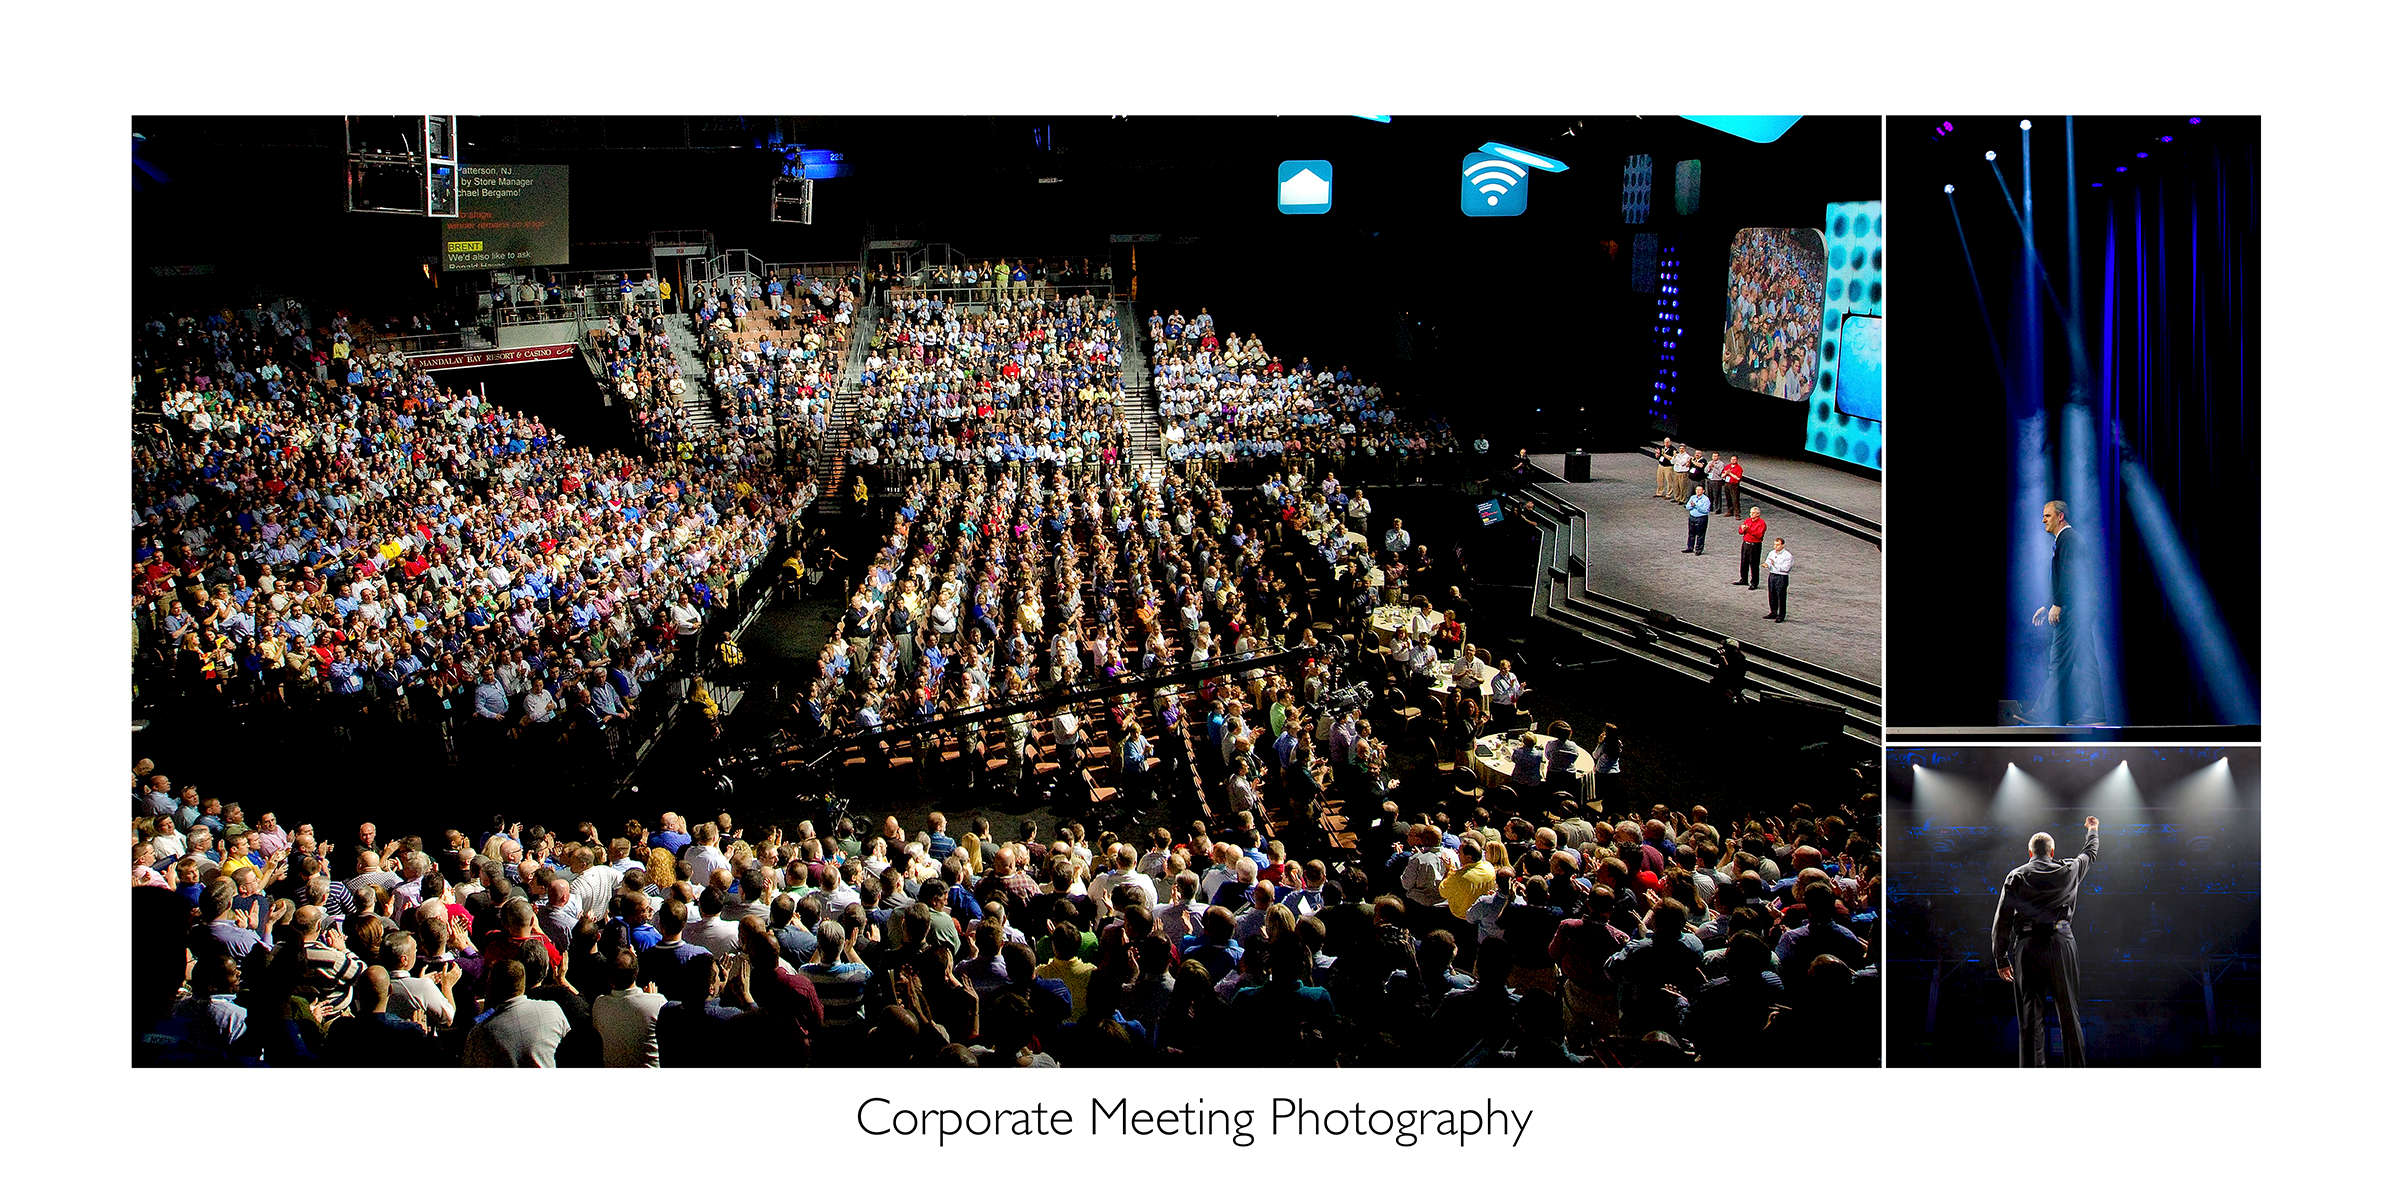 Collection of images from a large corporate event. The largest image shows thousands of people filling a stadium to hear corporate executives speak at an annual corporate sales meeting. Photography of corporate meetings reinforce messages and rekindle emotions long after attendees return home. Strong images also help promote and drive excitement for upcoming events. 